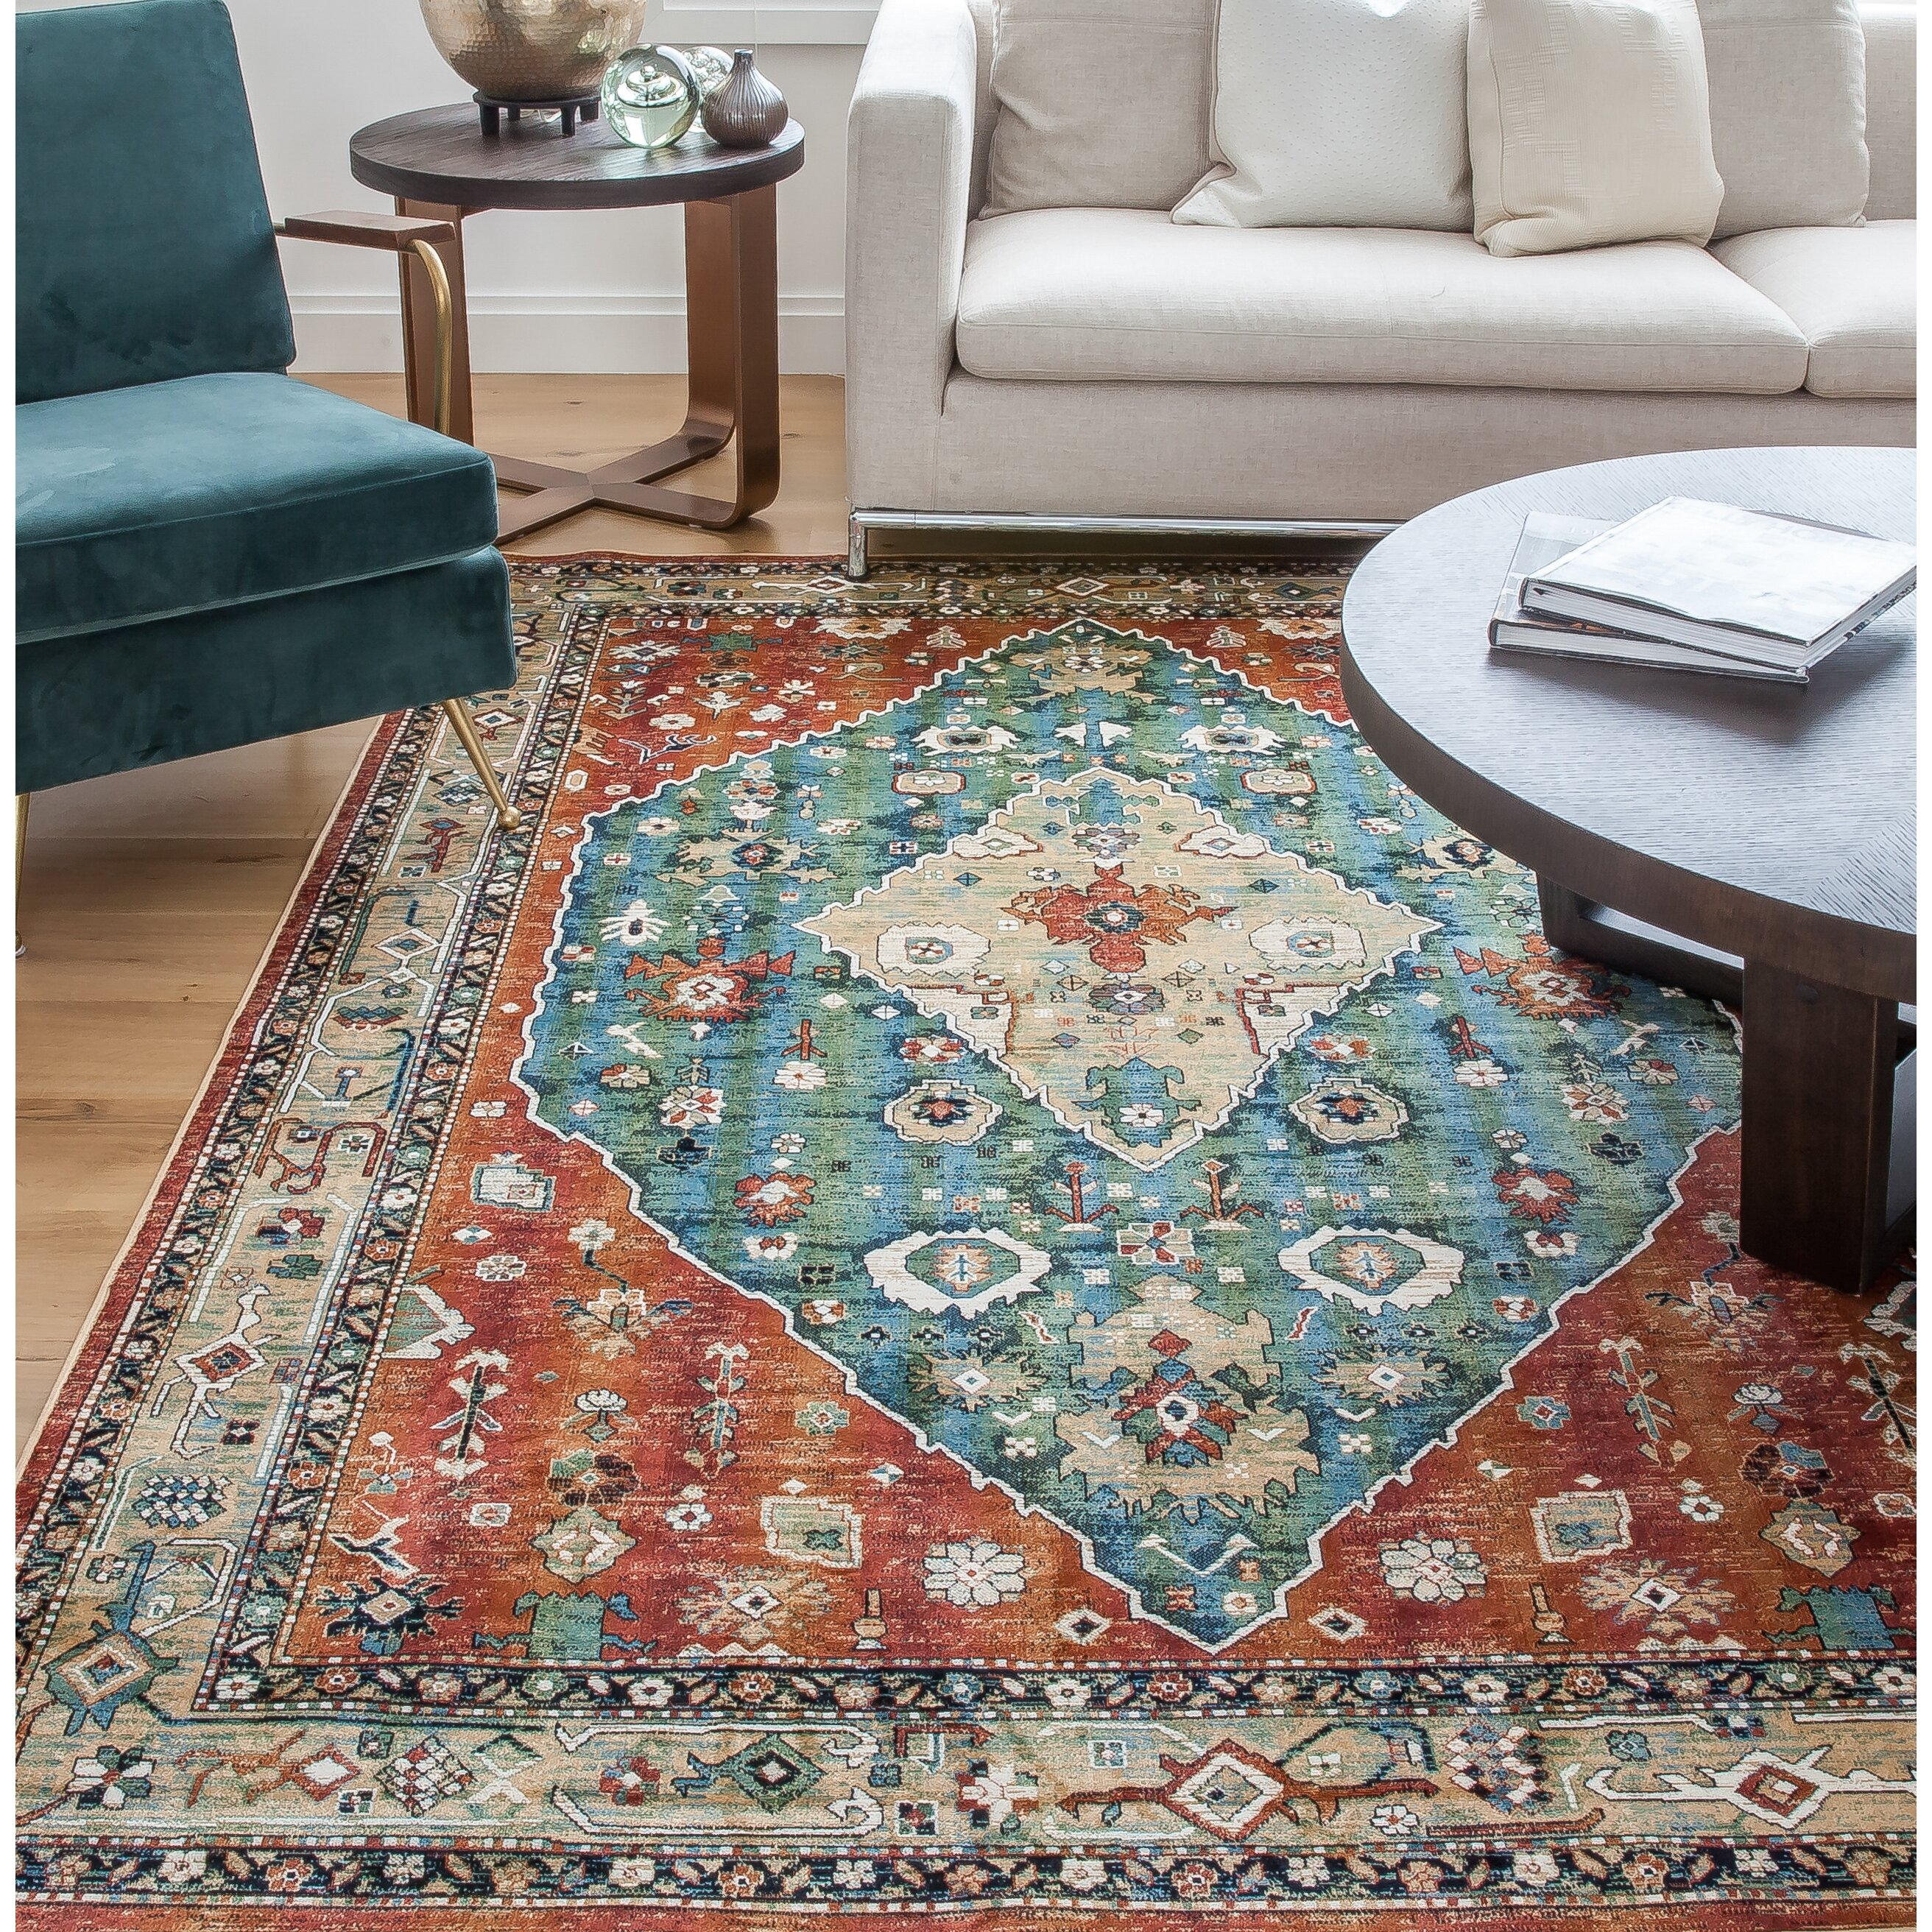 Abacasa Sonoma Aqua/Celadon/Rust/Tan Area Rug & Reviews